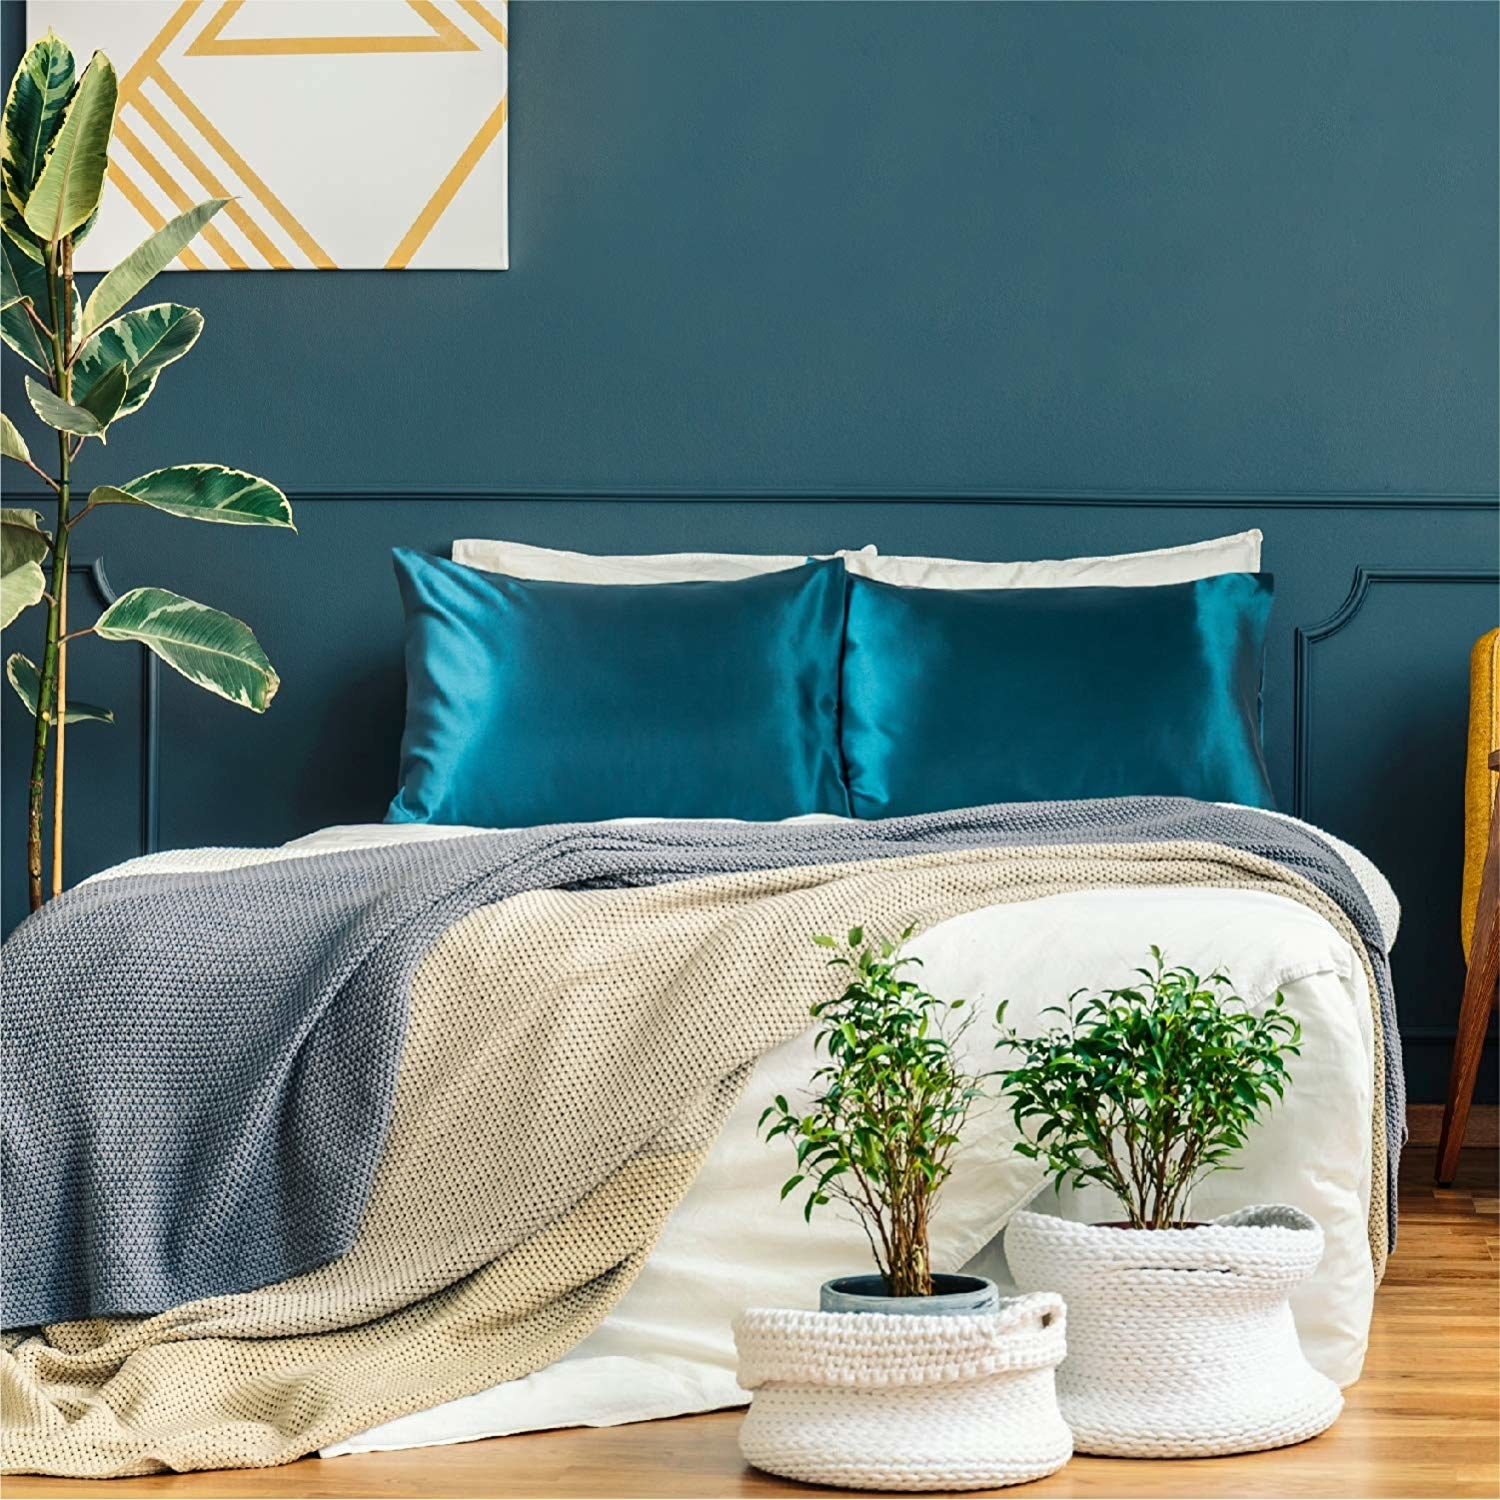 two rich aqua colored satin pillowcases styled on a bed